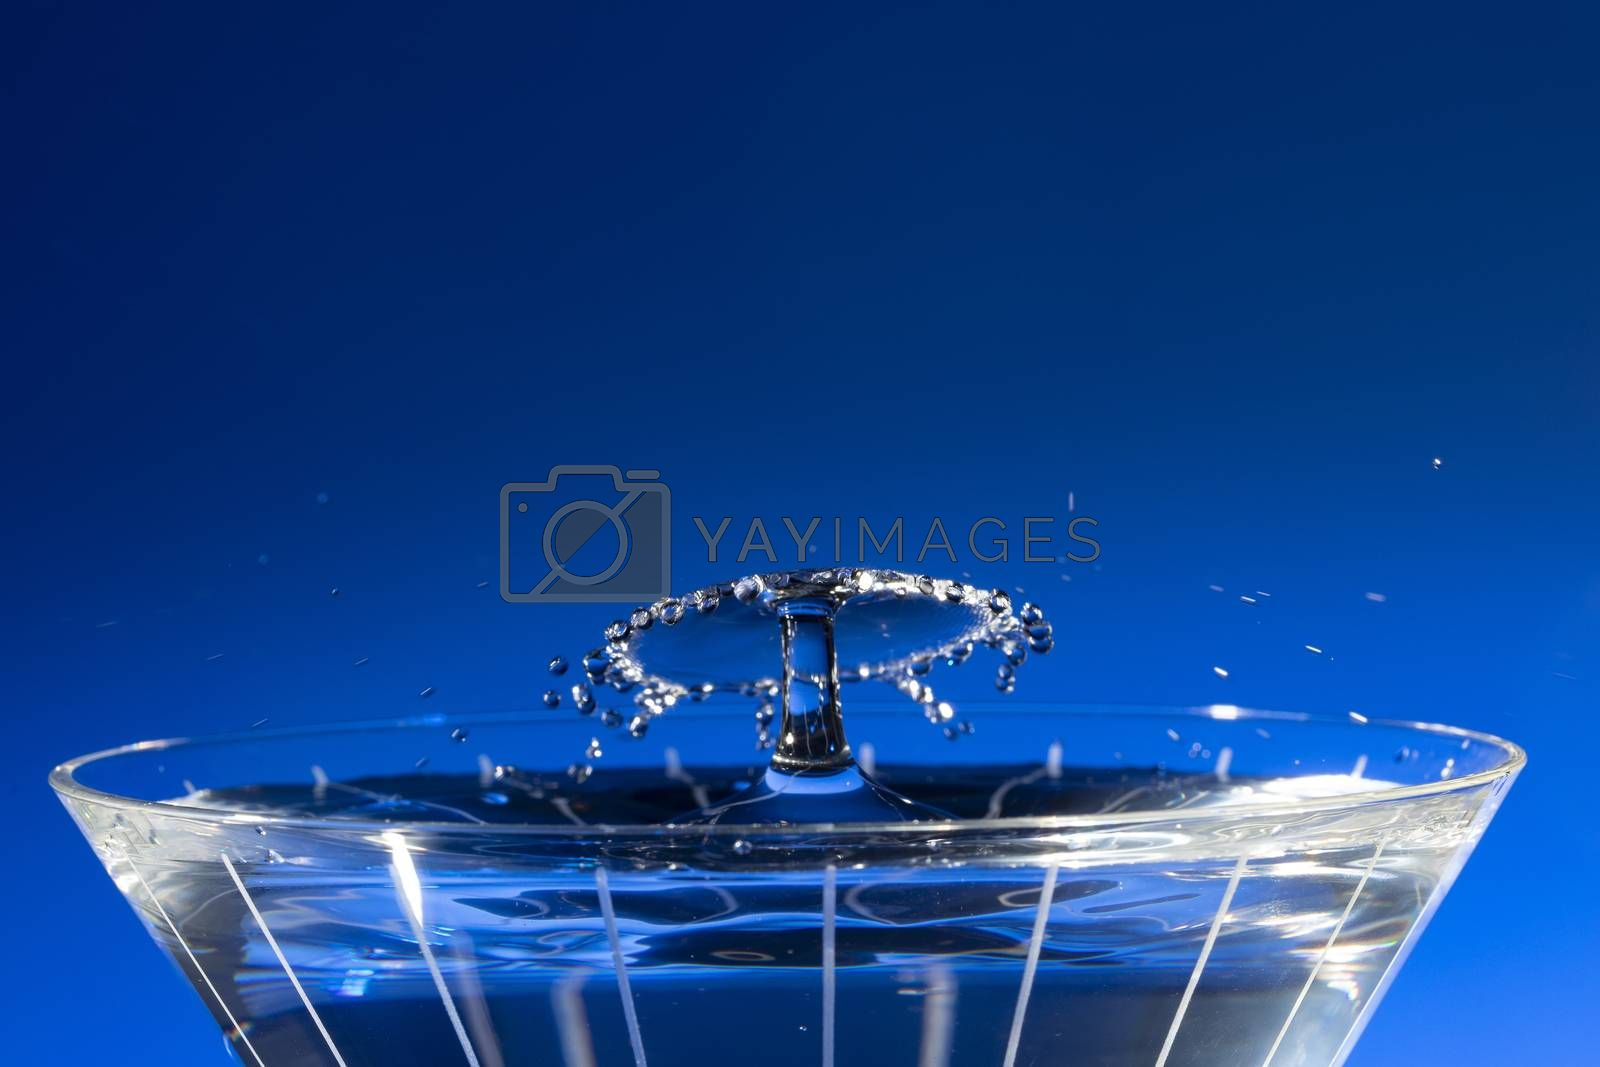 Water Drops Collide Over Martini Glass Blue by Charlie Floyd